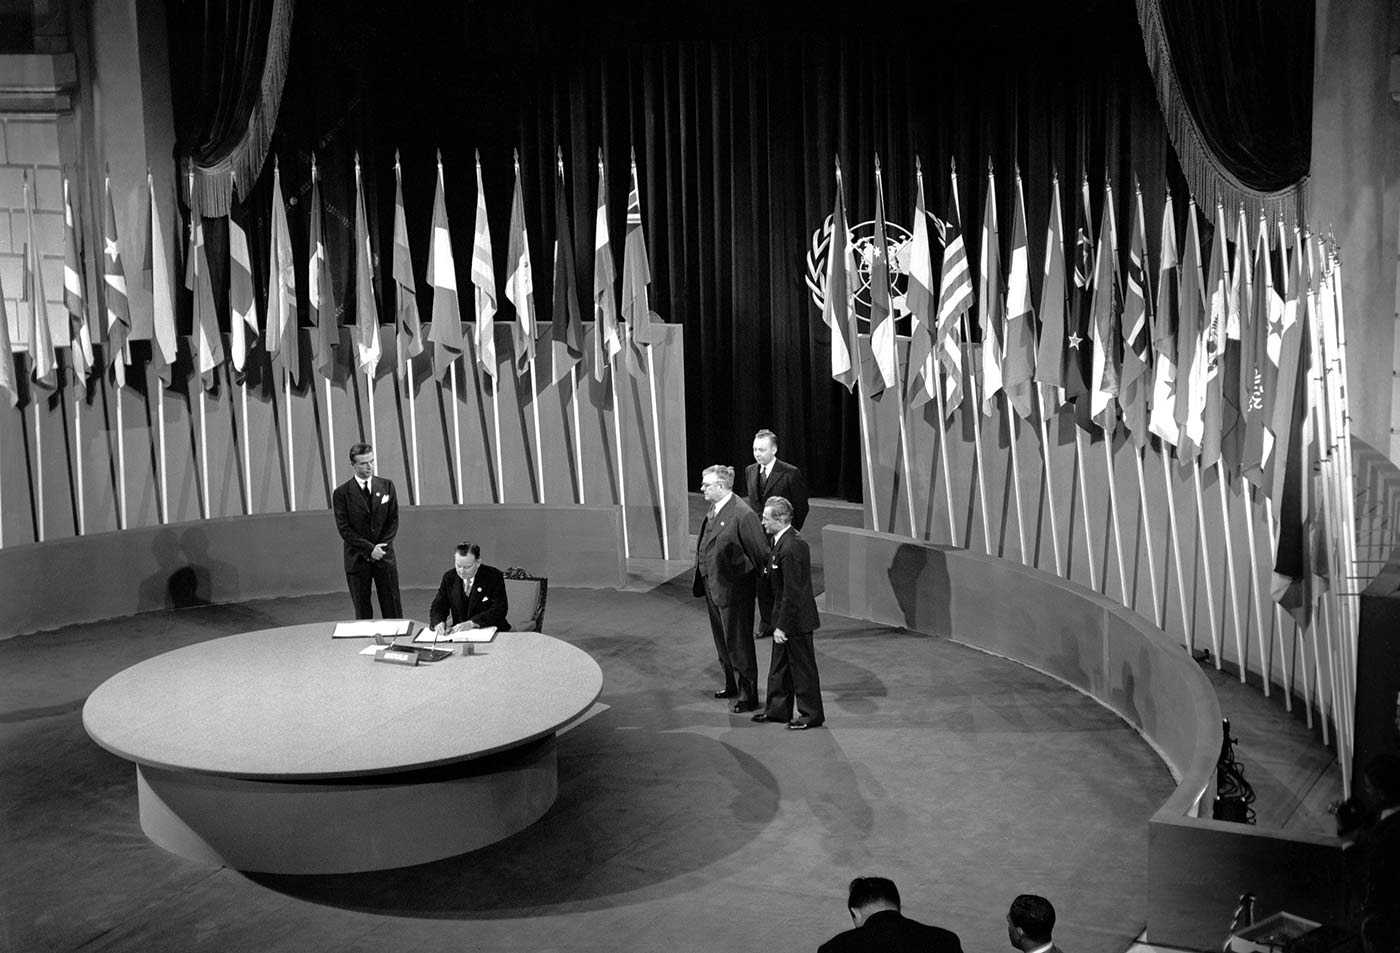 Interior black and white photo of man sitting at large round table signing a document, with four men standing behind him and a series of flags arranged behind them. - click to view larger image